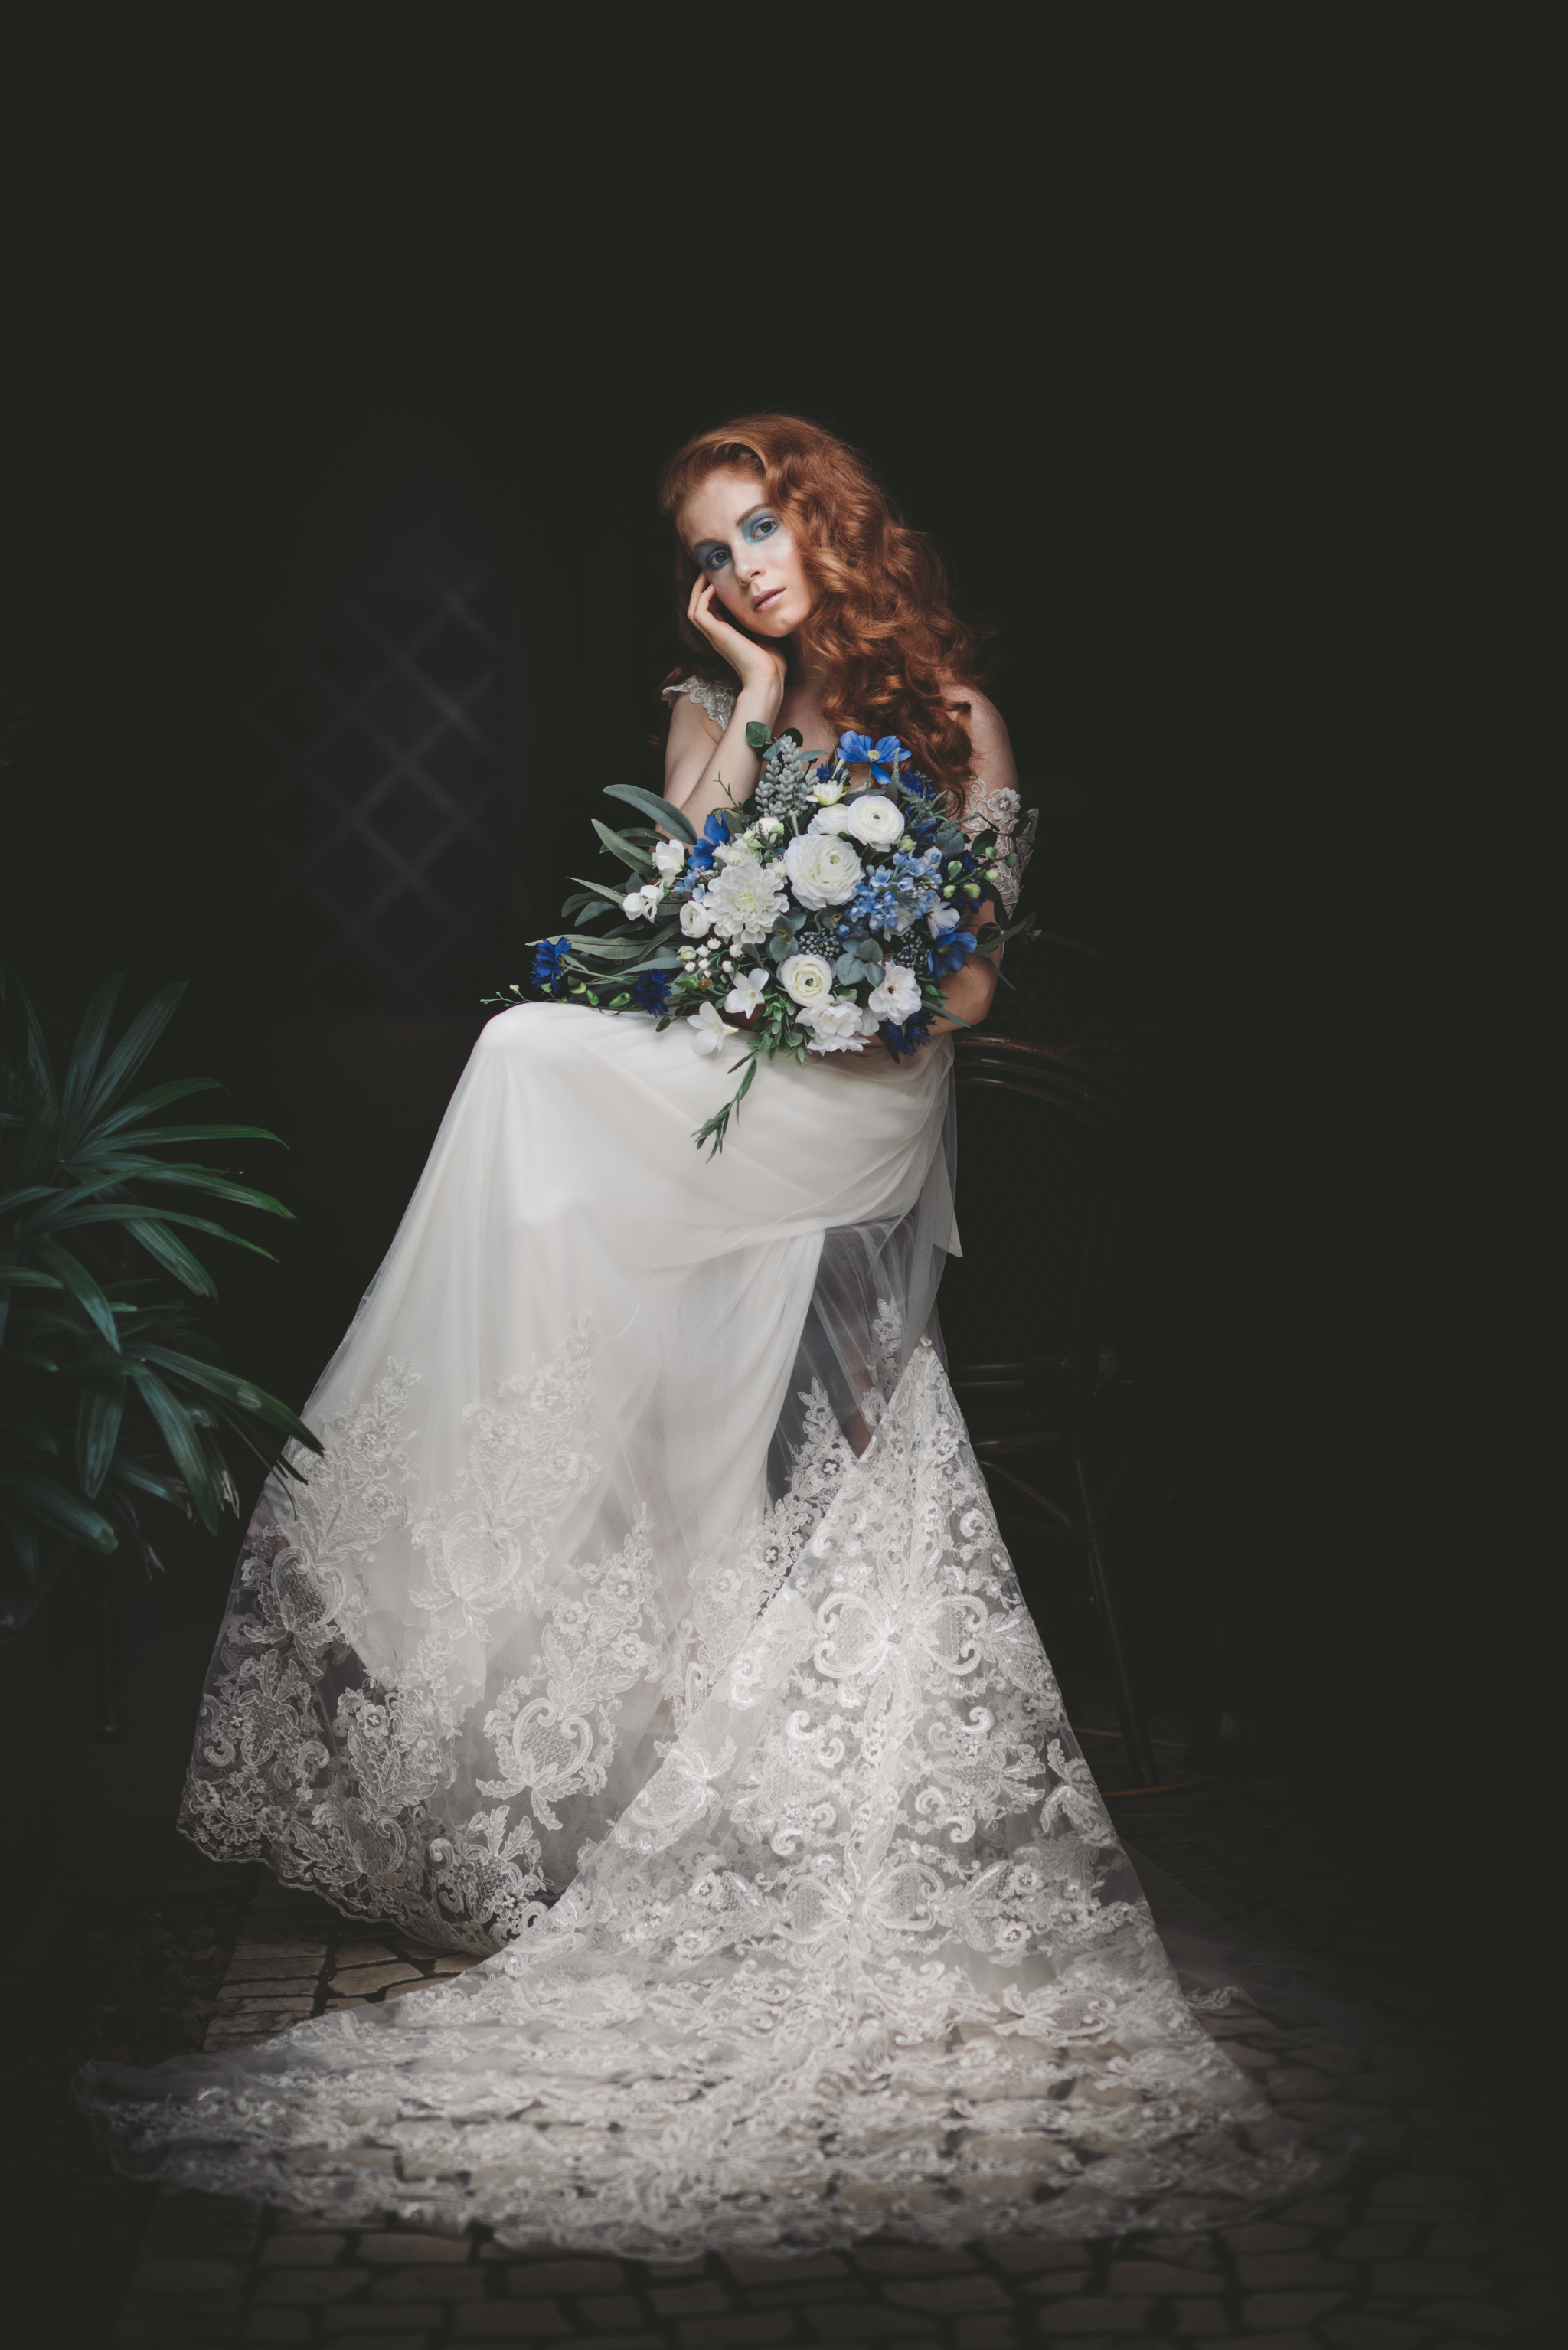 Lovelenscapes Bridal Editorial Photography • Anna Campbell Bridal • Savannah Gown • Alphonse Mucha X Vogue • Sapphire